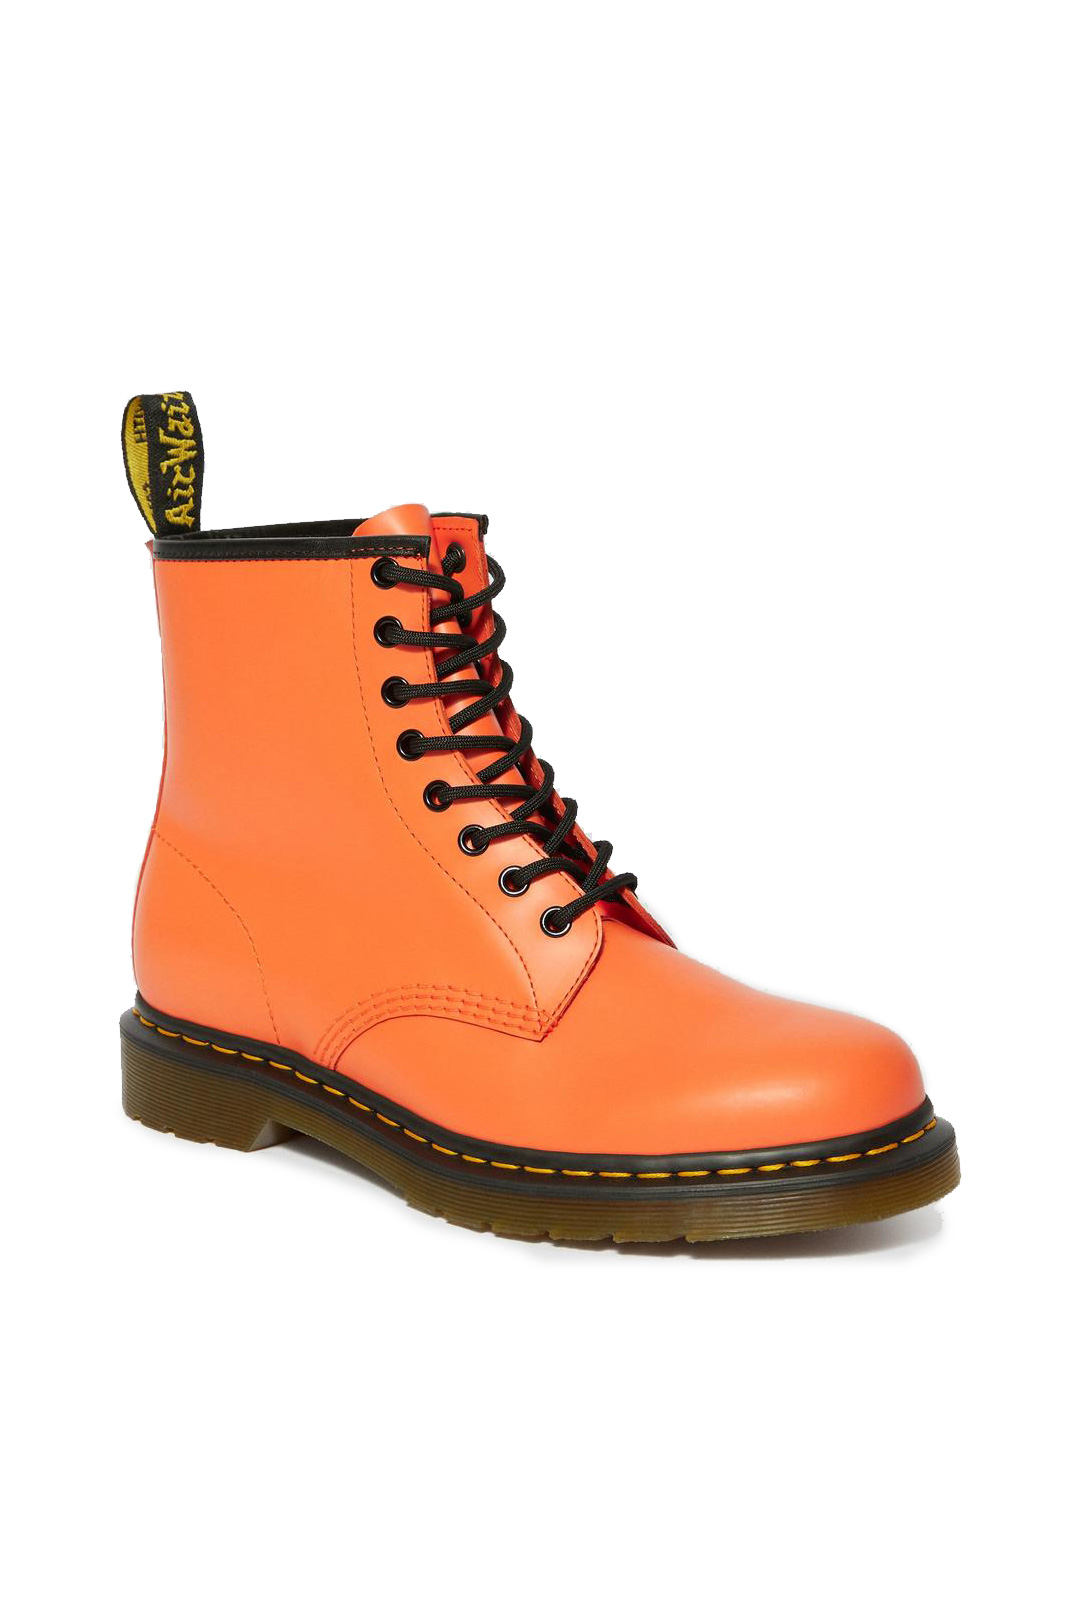 1460 8 eye Boot Orange